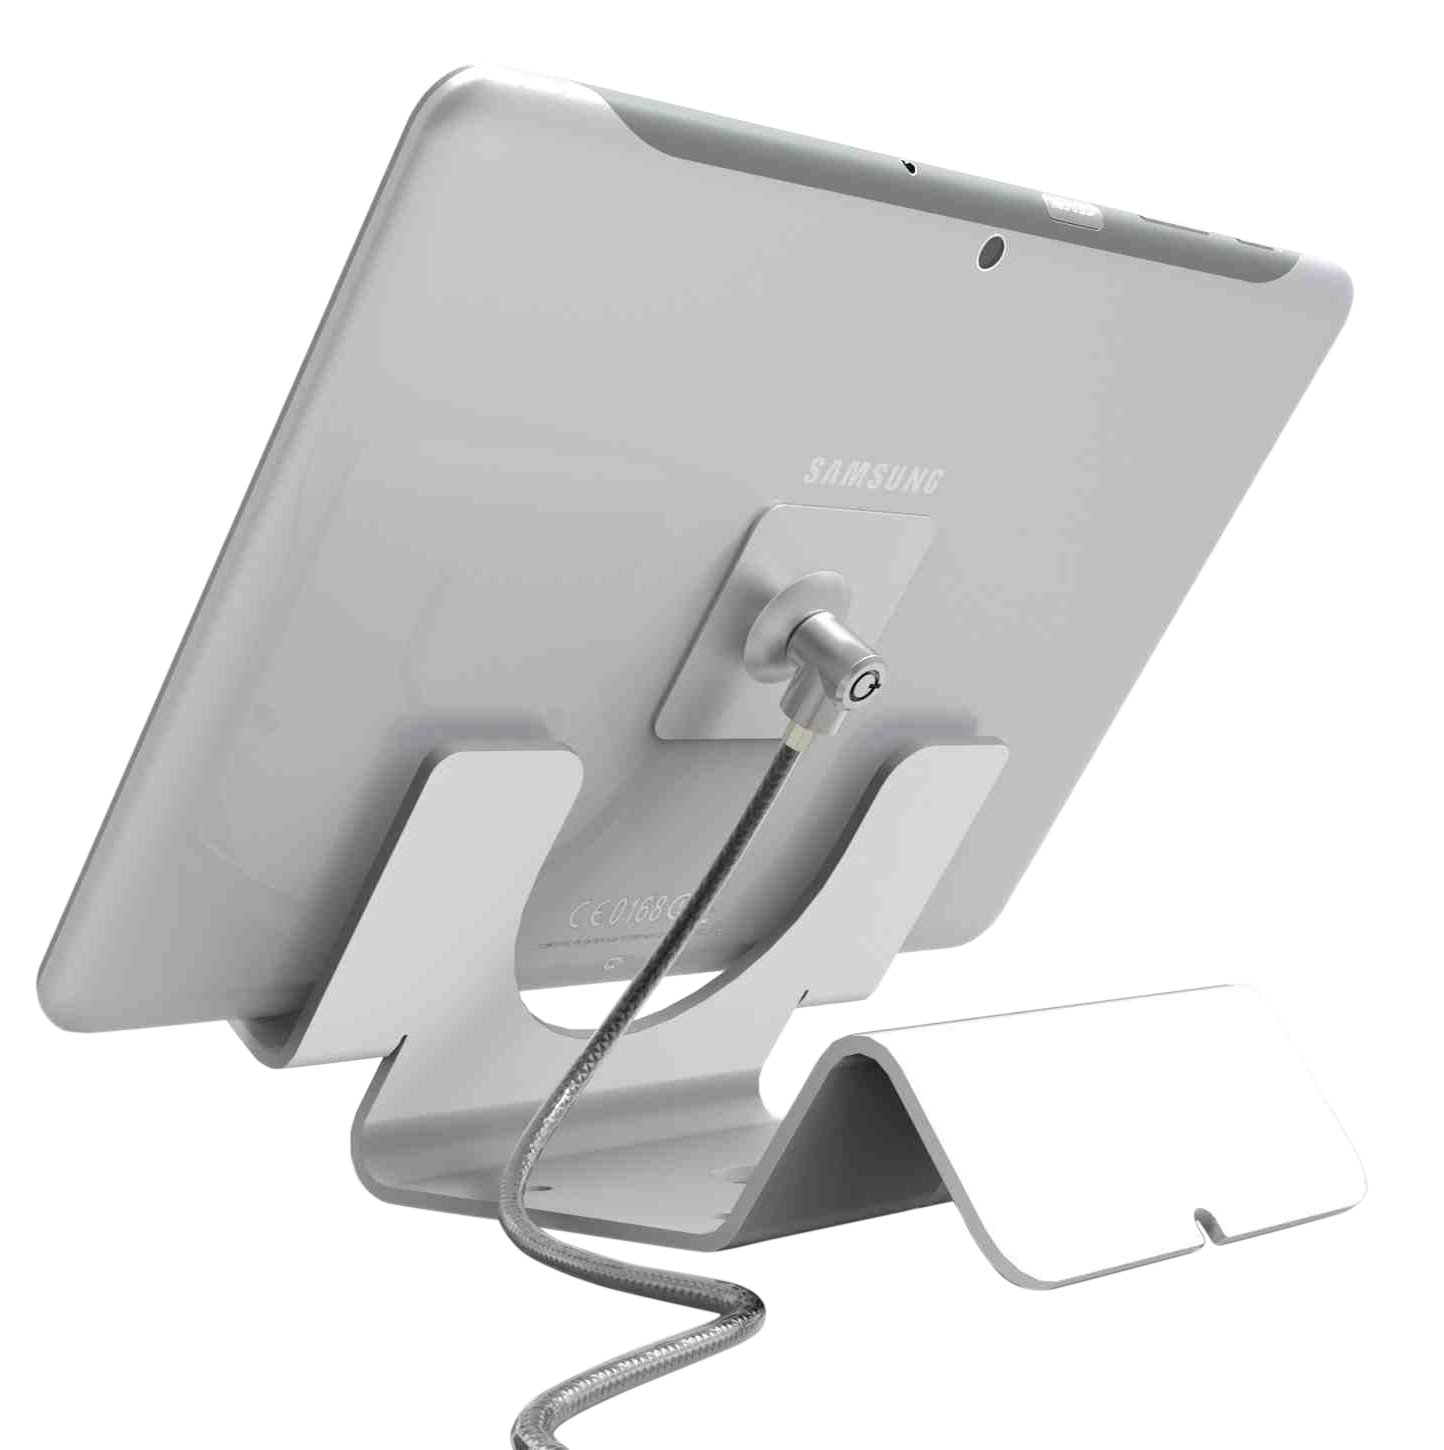 Compulocks Security Stand for Samsung Tablets, White (CL12UTHWBGLX)